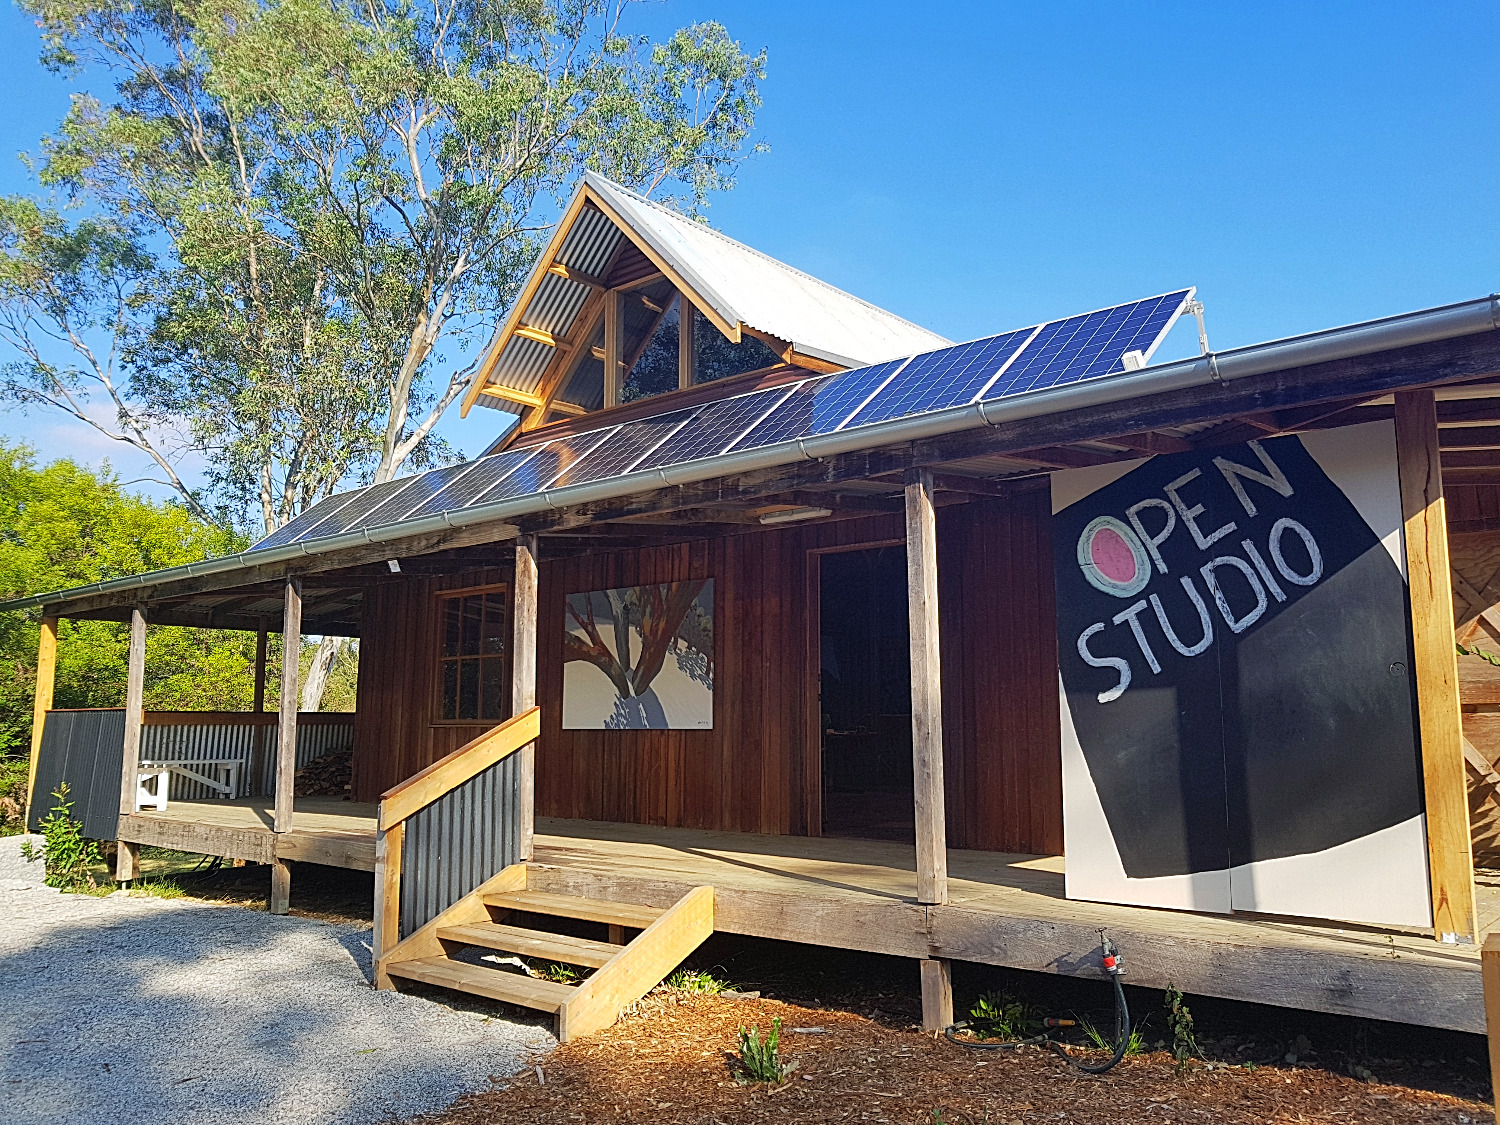 Artist's Studio located in Gippsland